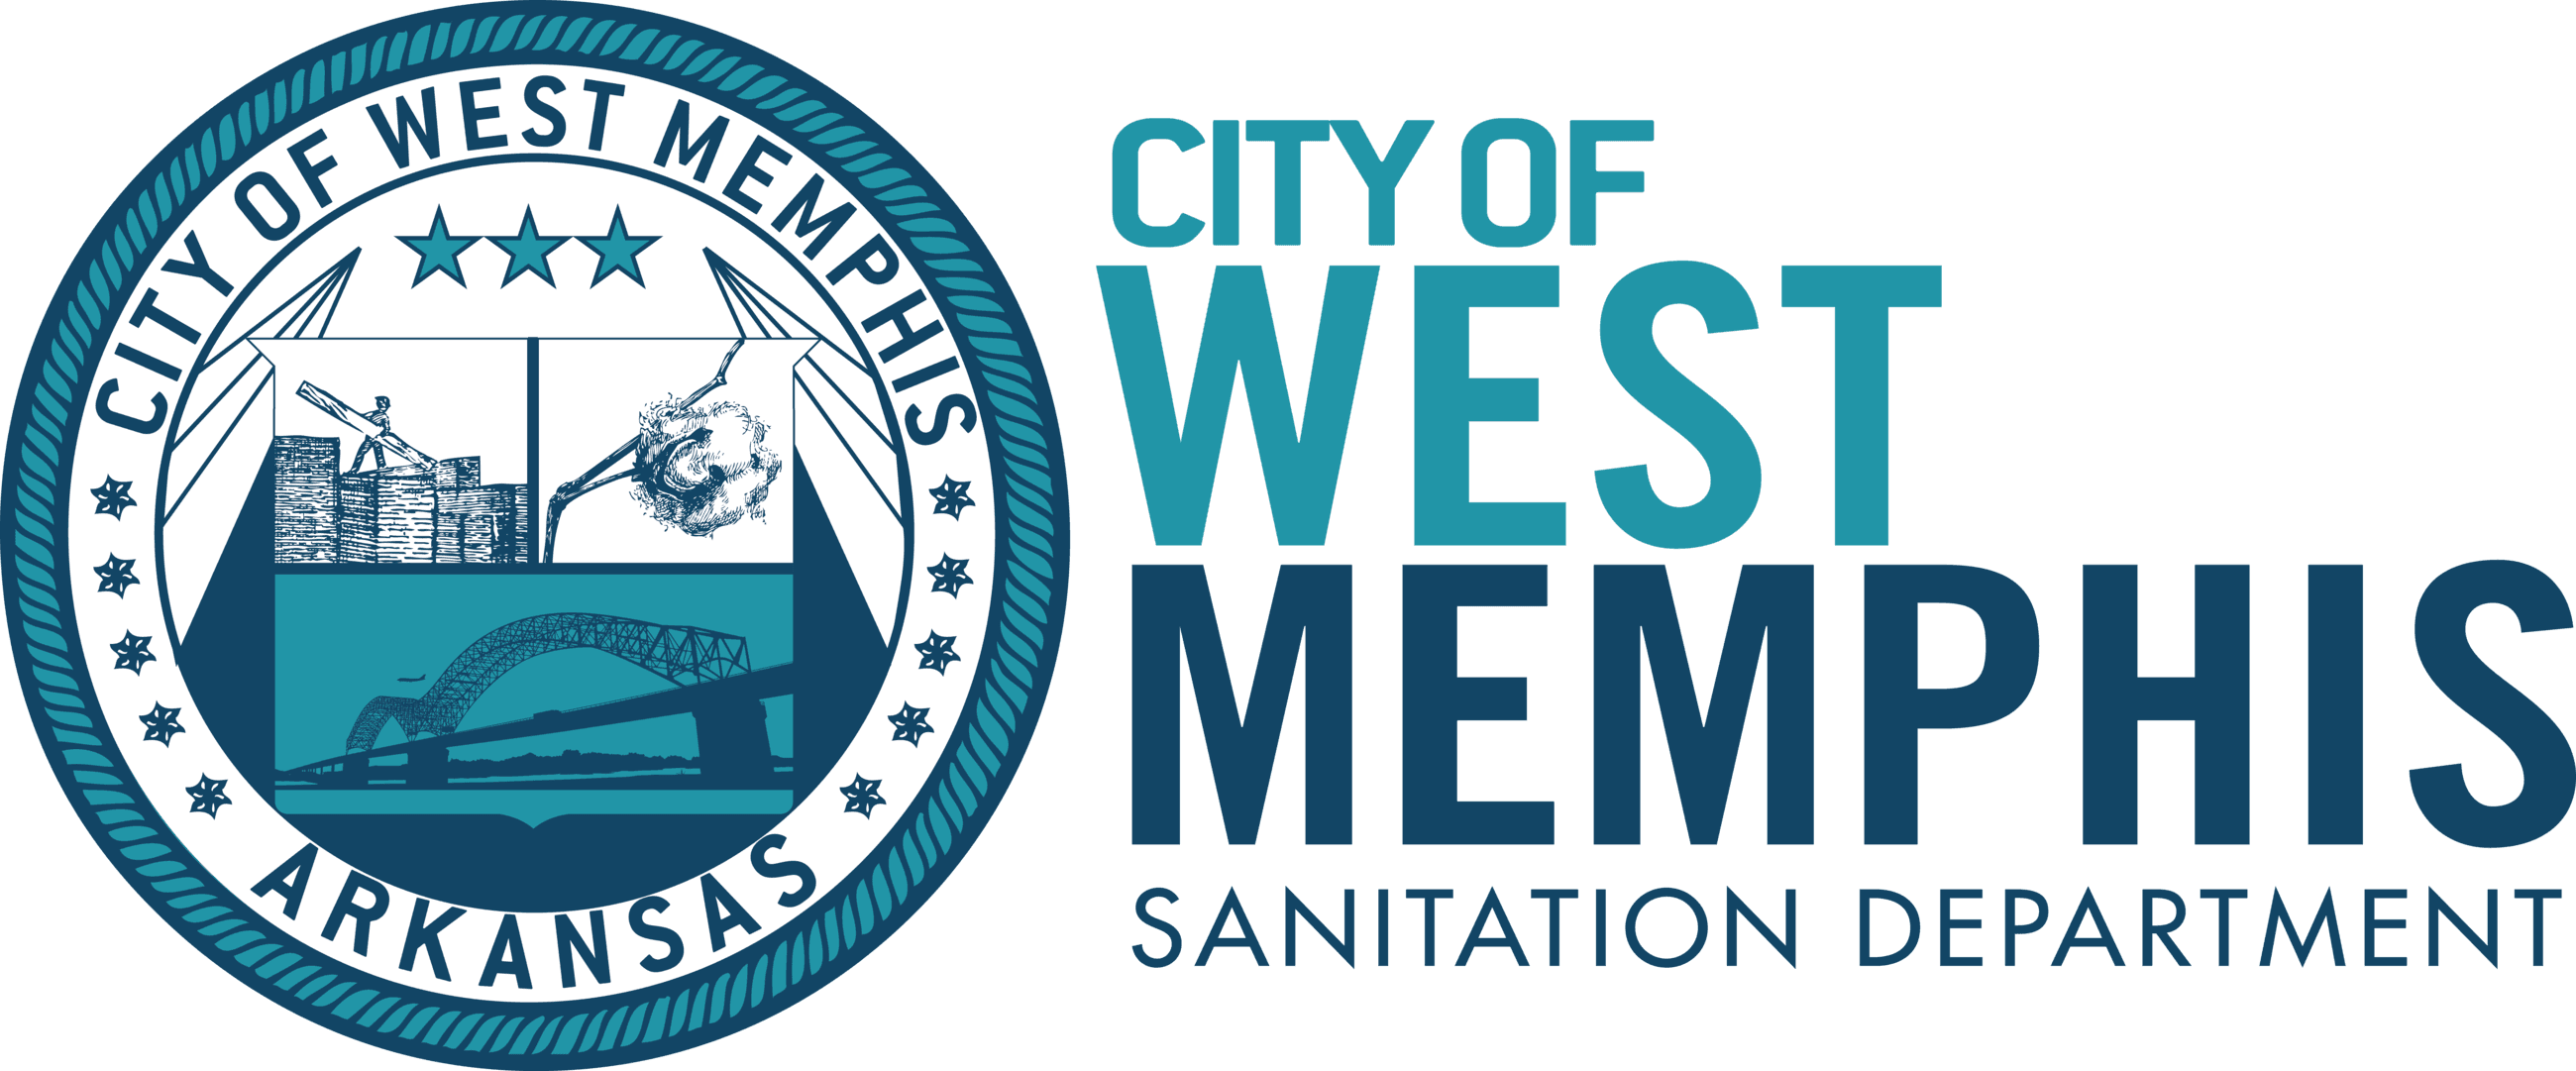 West Memphis Sanitation Department SEAL [Sanitation]